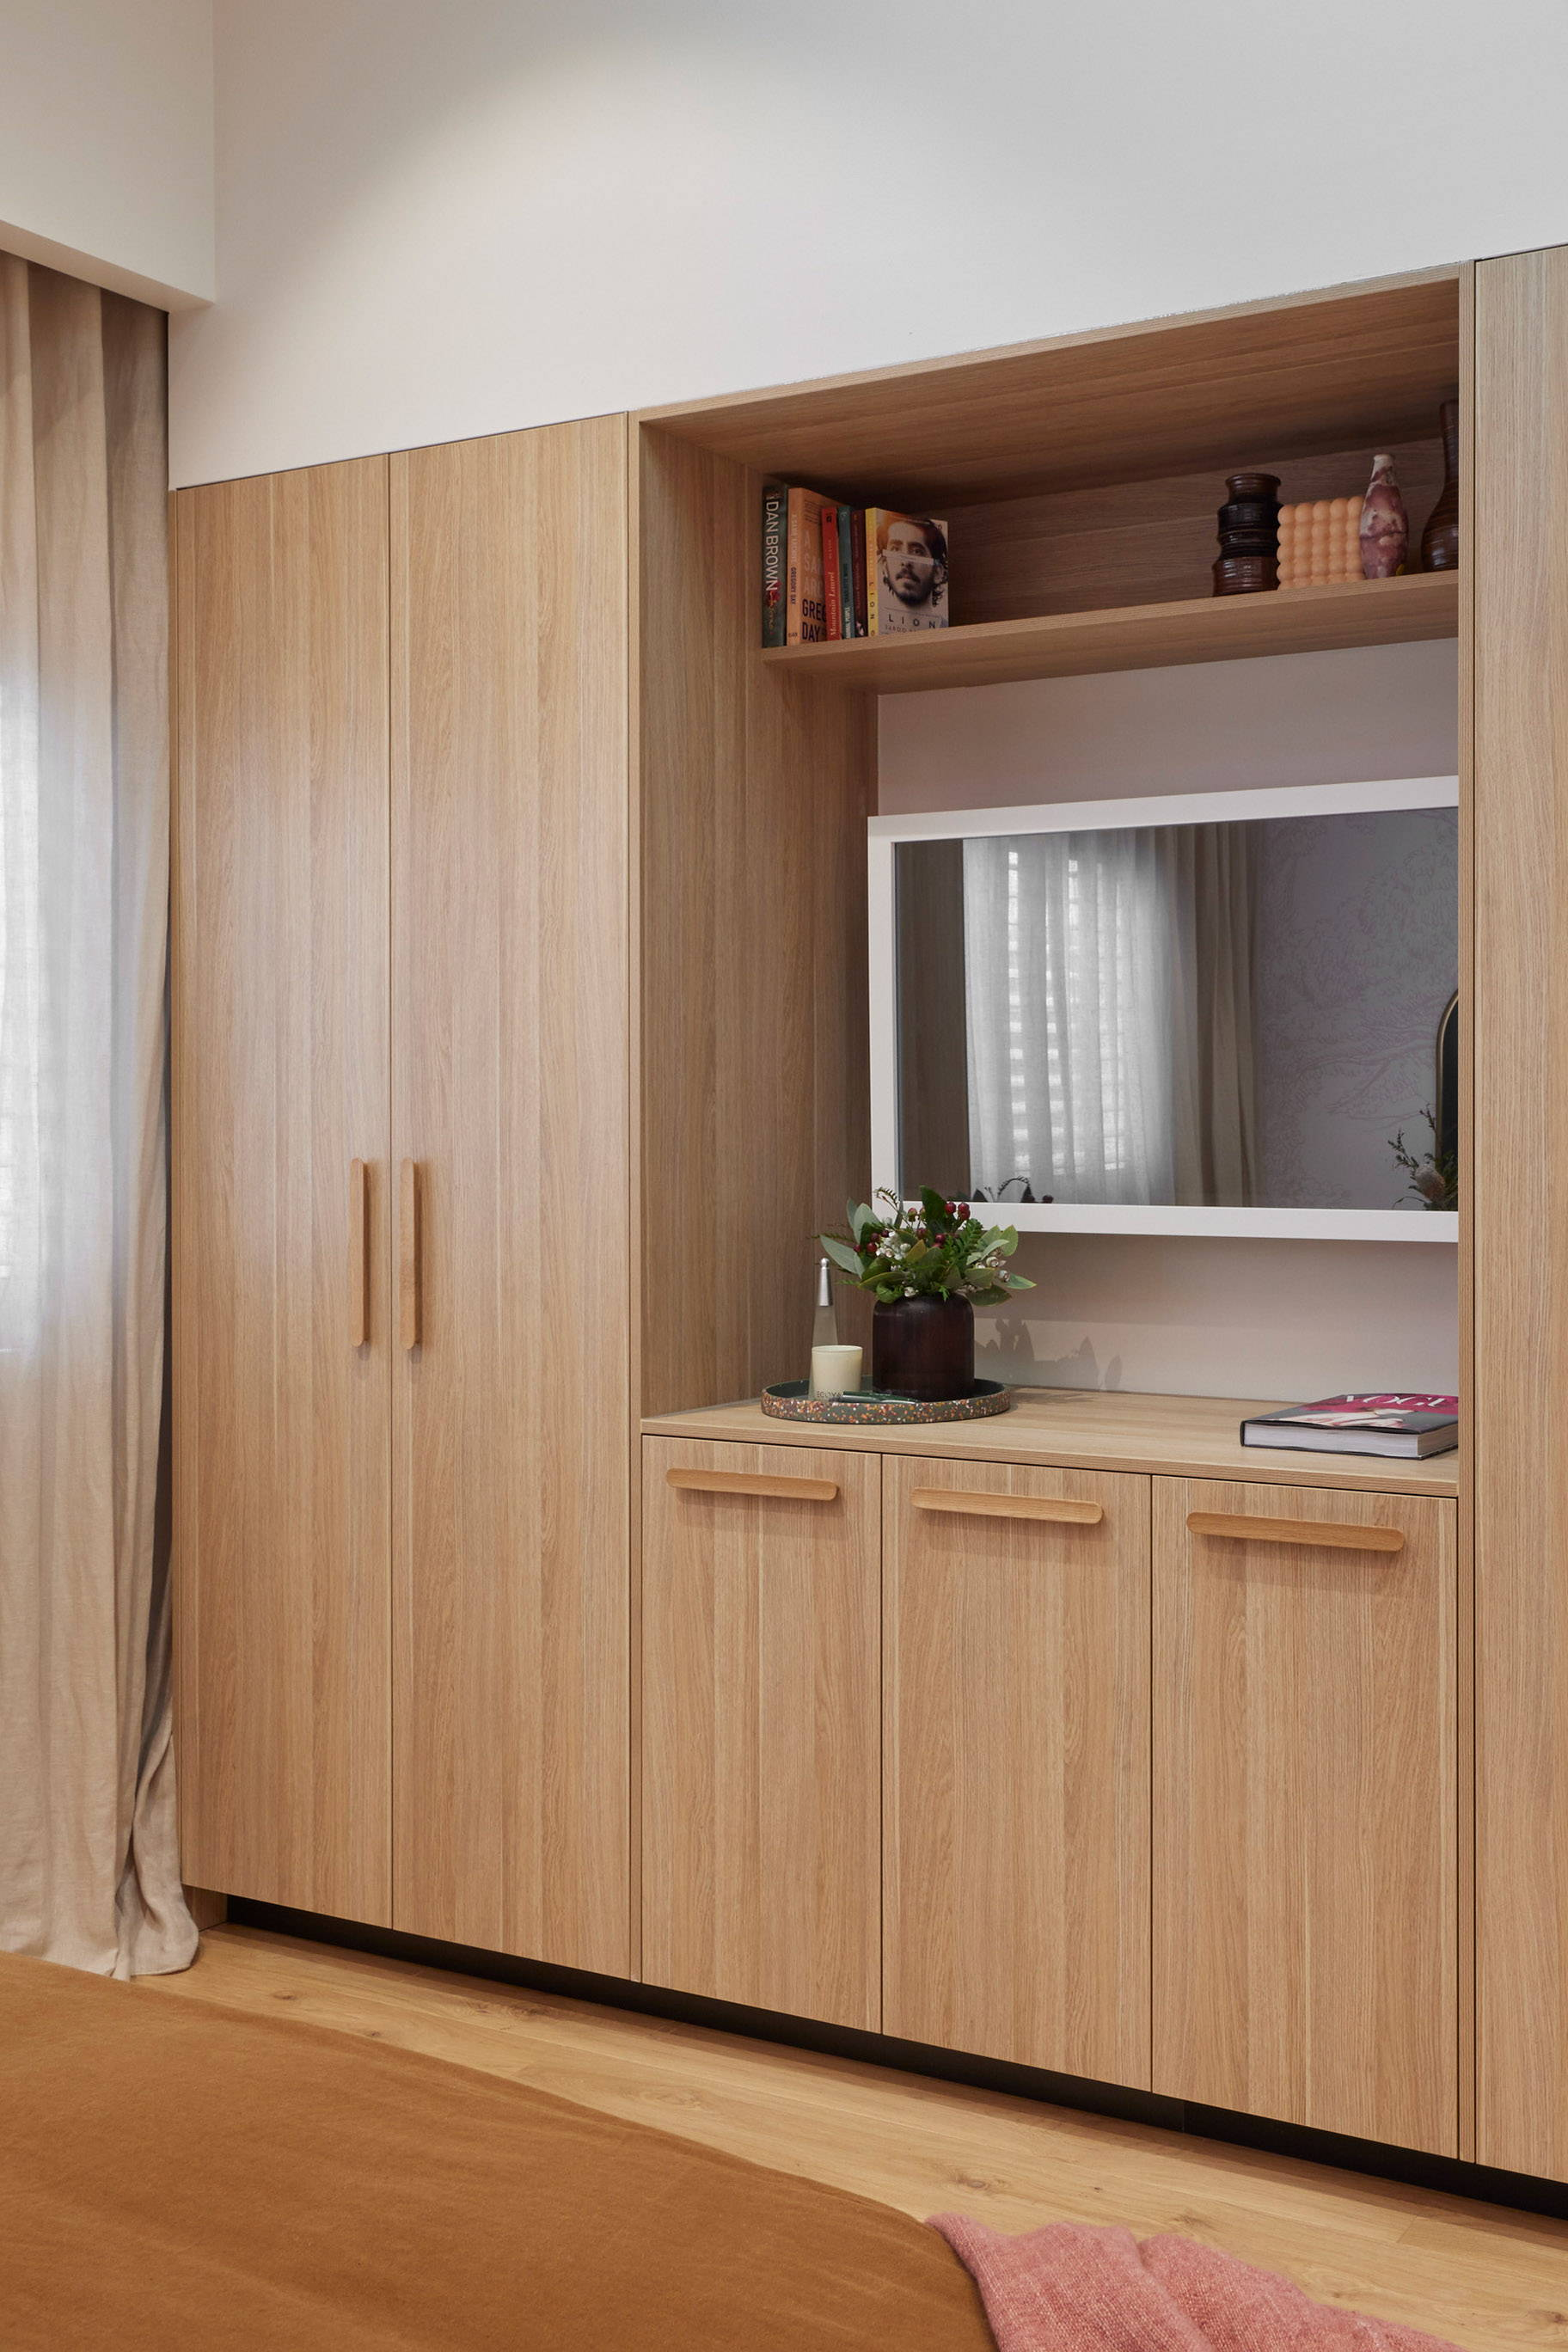 TV-Mirror Modern Matte White Frame by FRAMING TO A T - A square white frame on a TV-Mirror inset into oak cabinetry